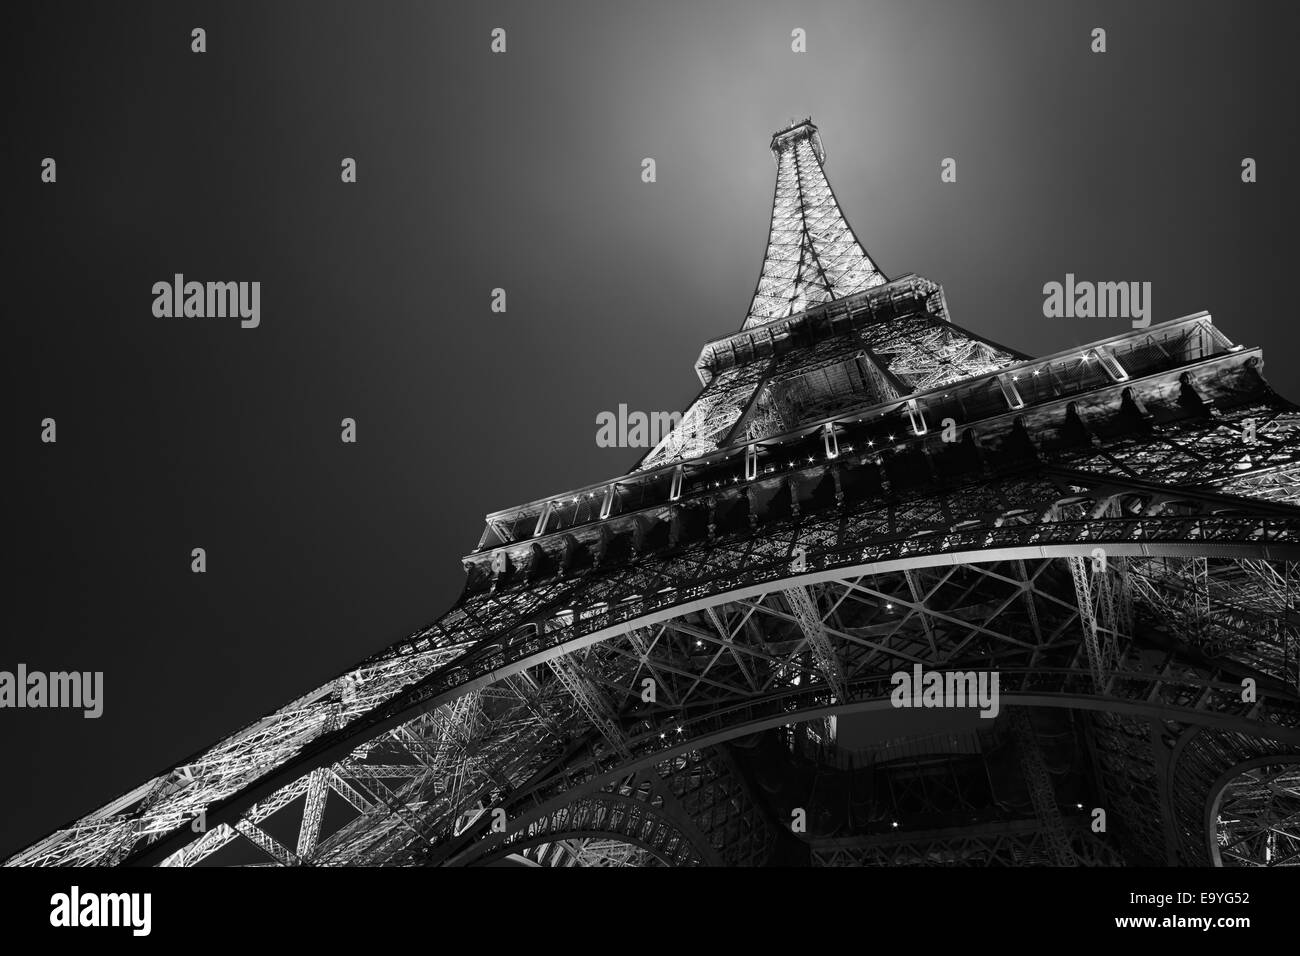 Eiffel tower in Paris at night, black and white, low angle view - Stock Image